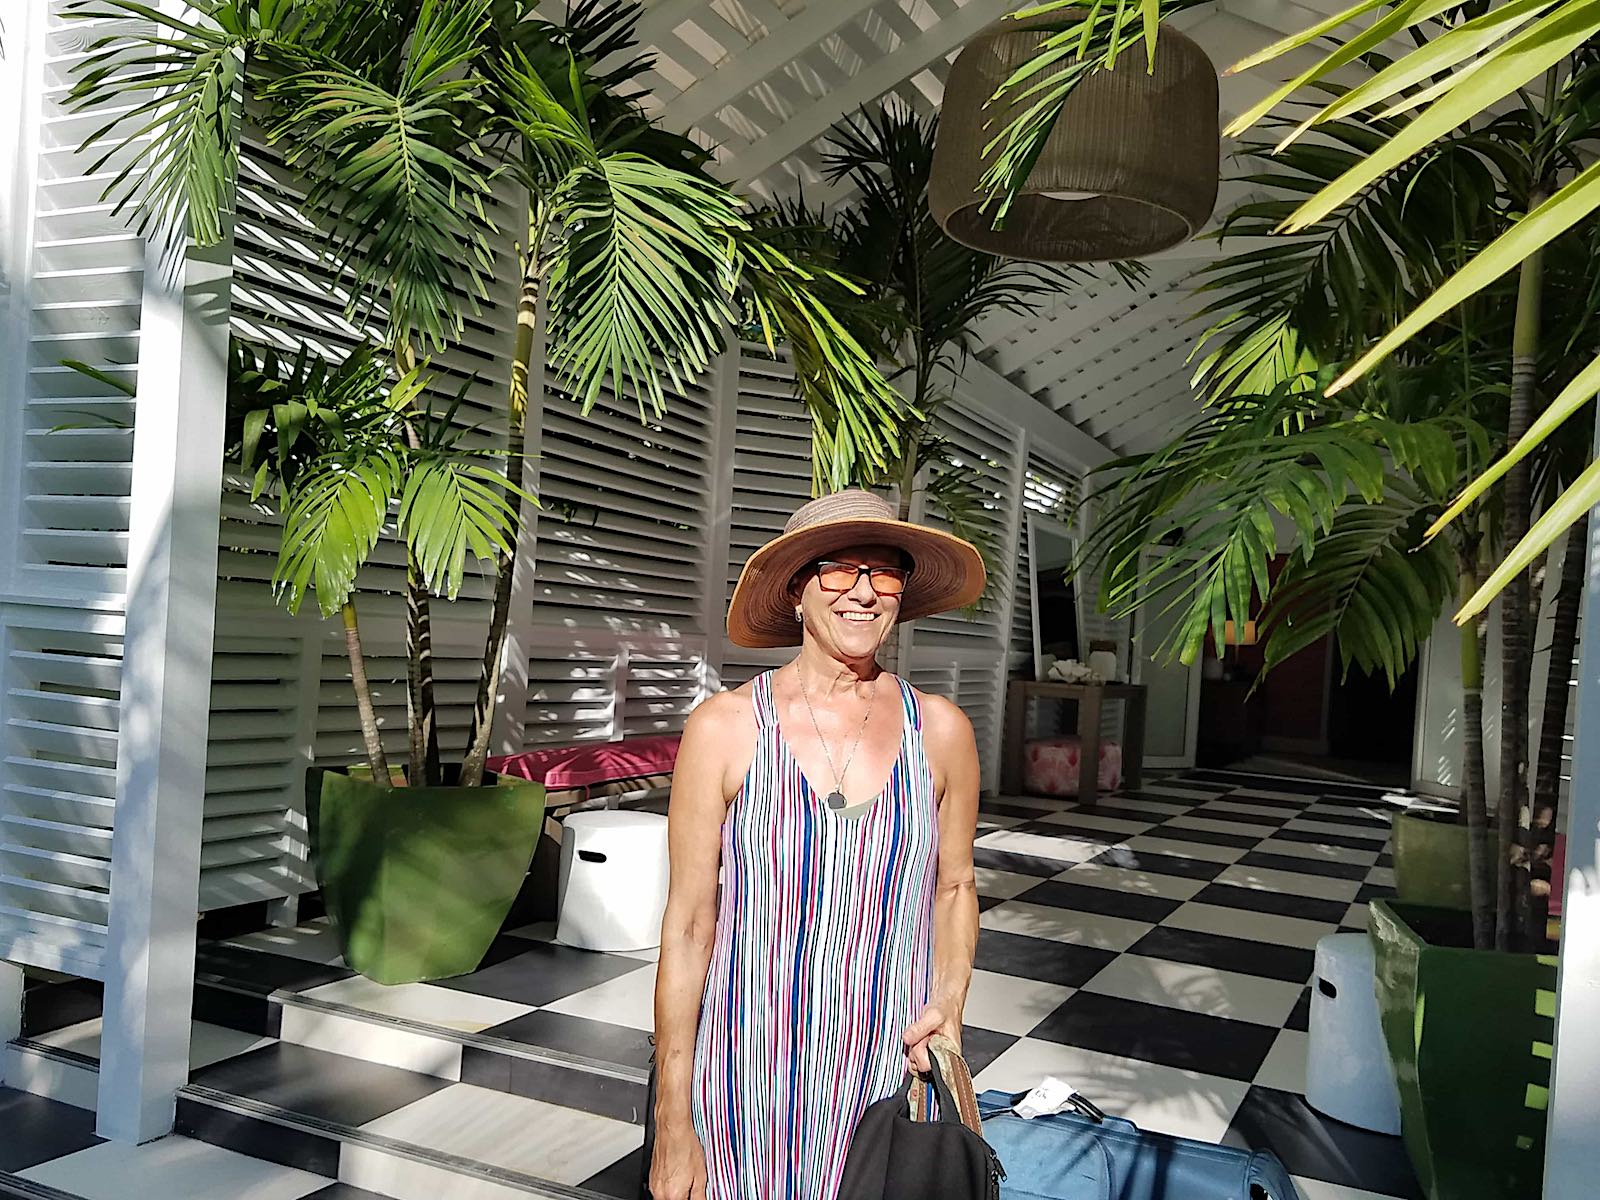 gail in the lobby of a tropical resort